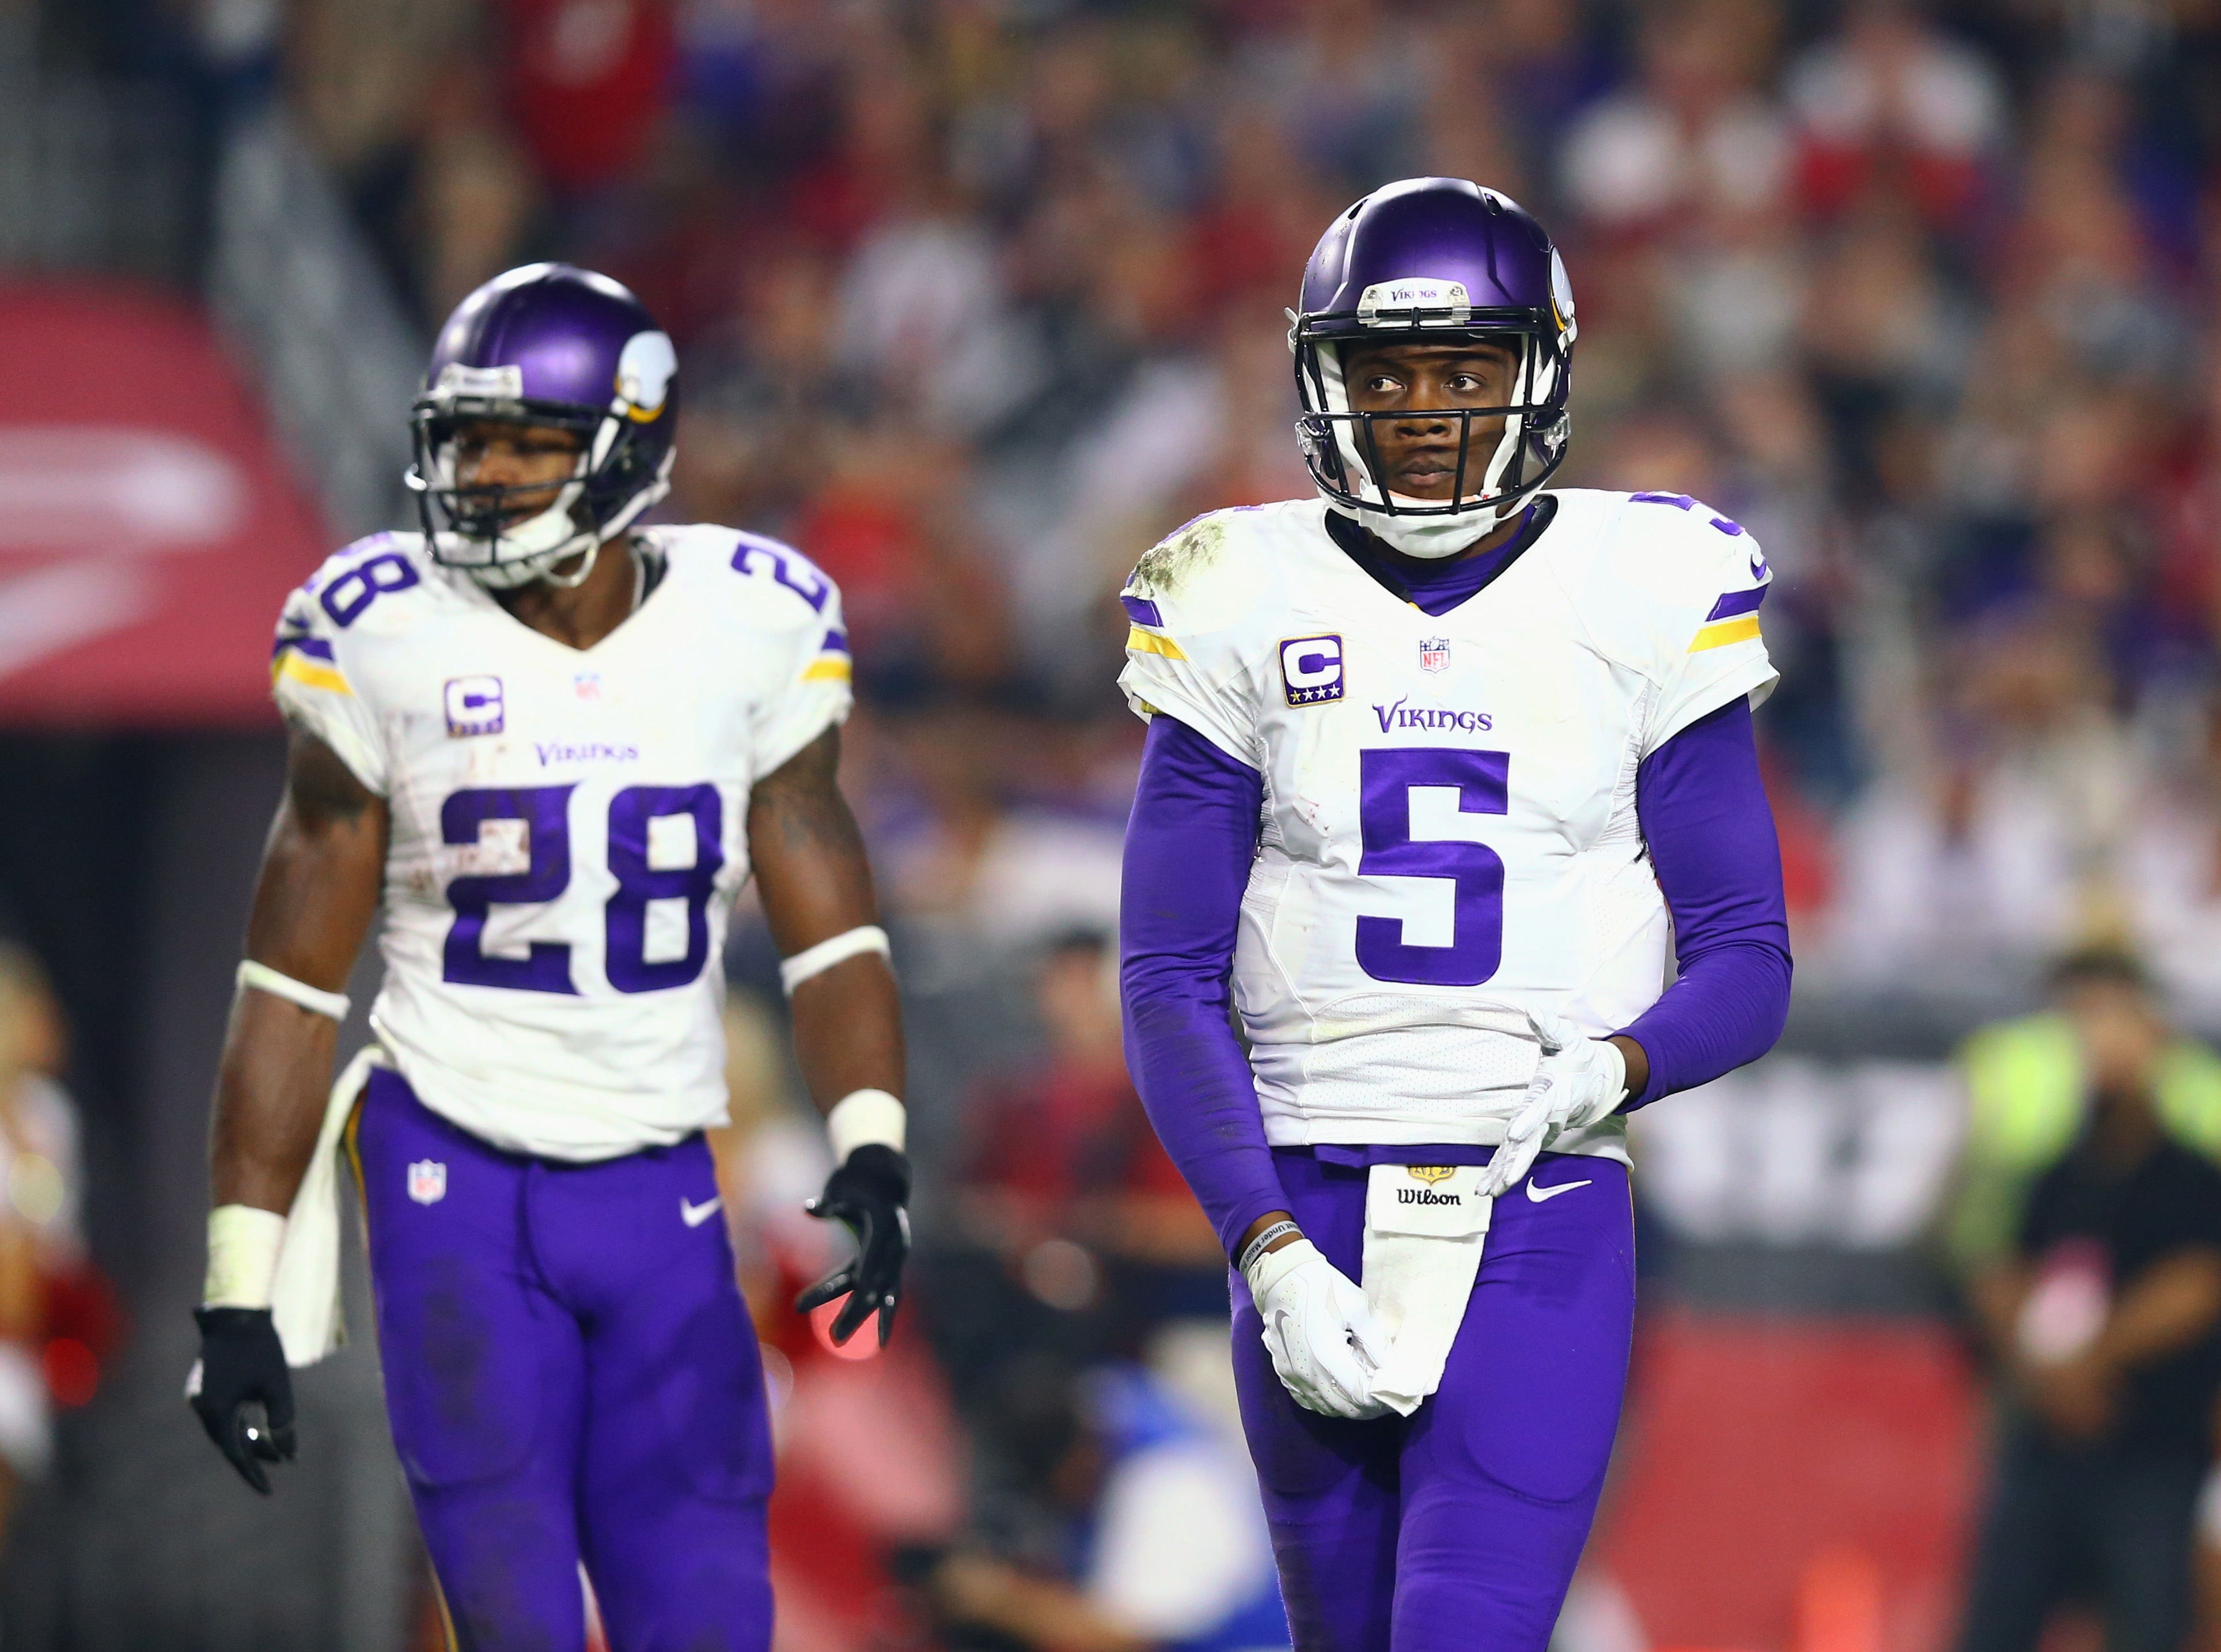 Teddy bridgewater injury update vikings expect qb to miss 2017 too report says sporting news - Teddy Bridgewater Injury Update Vikings Expect Qb To Miss 2017 Too Report Says Sporting News 15